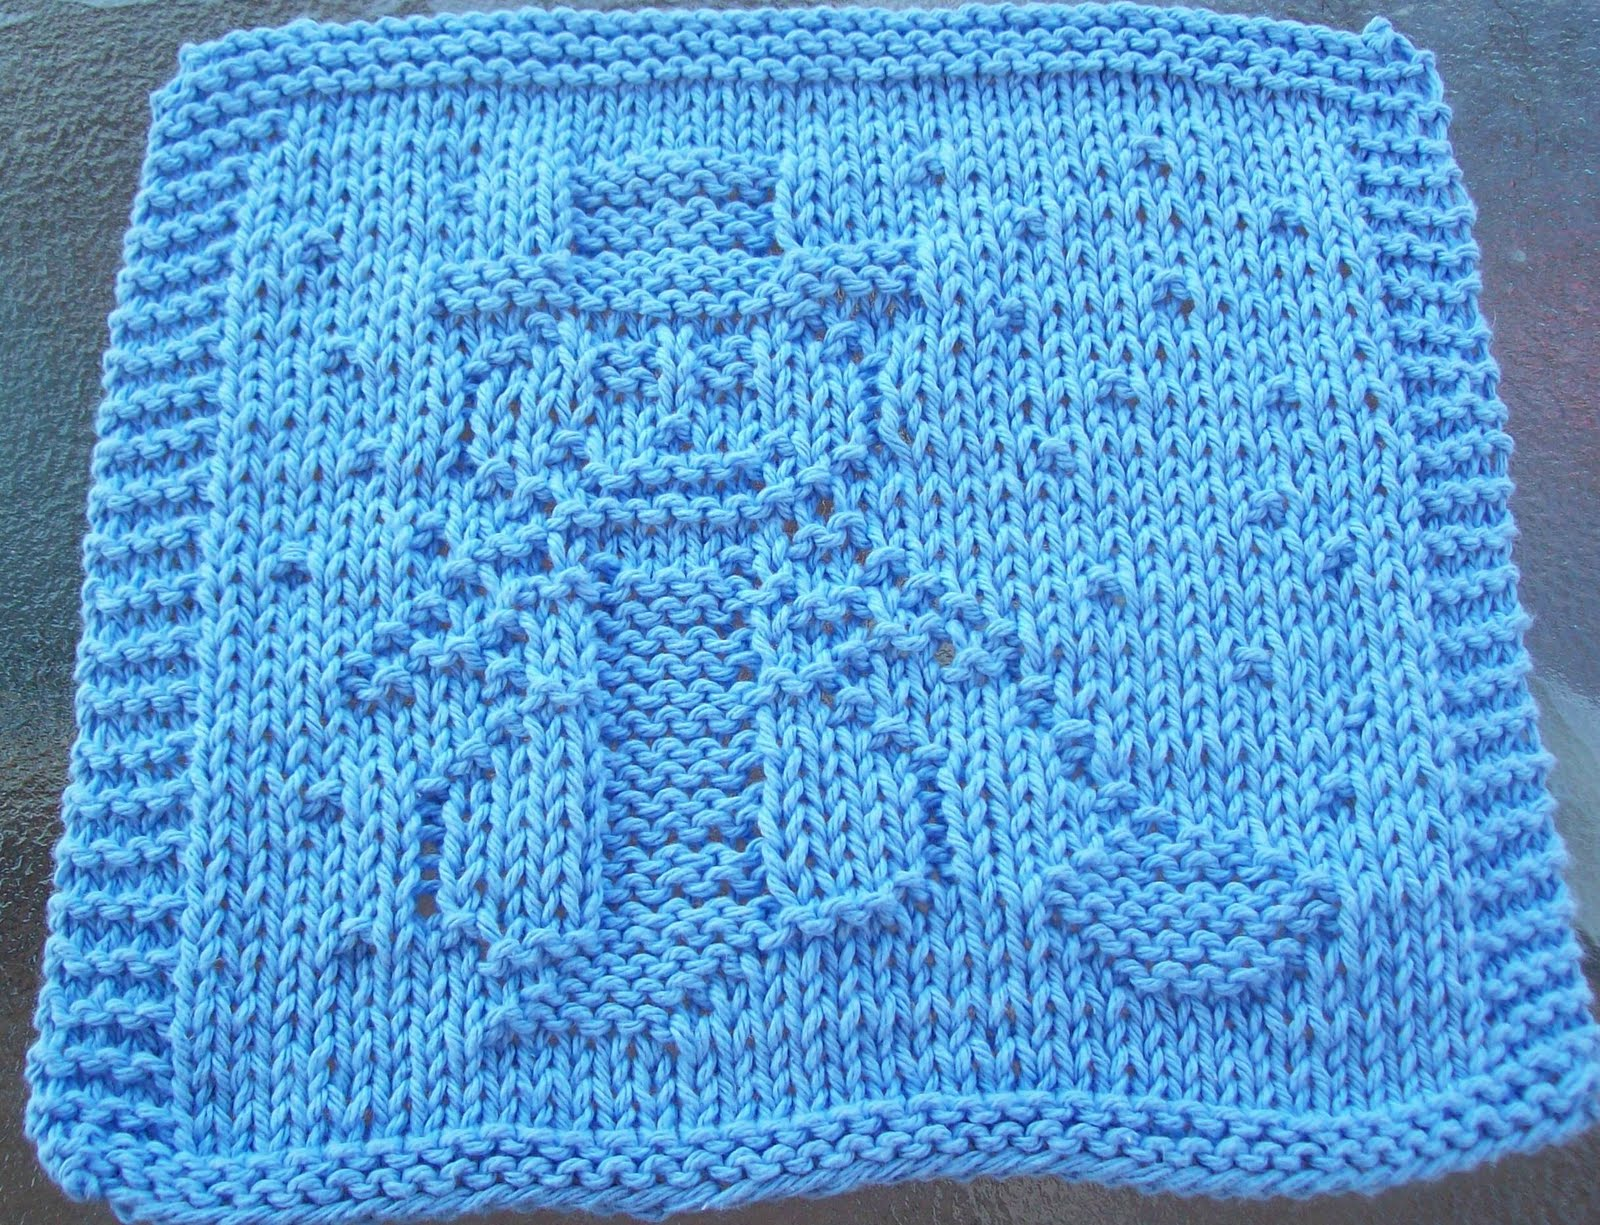 Knit Dishcloth Pattern Free : DigKnitty Designs: November 2009